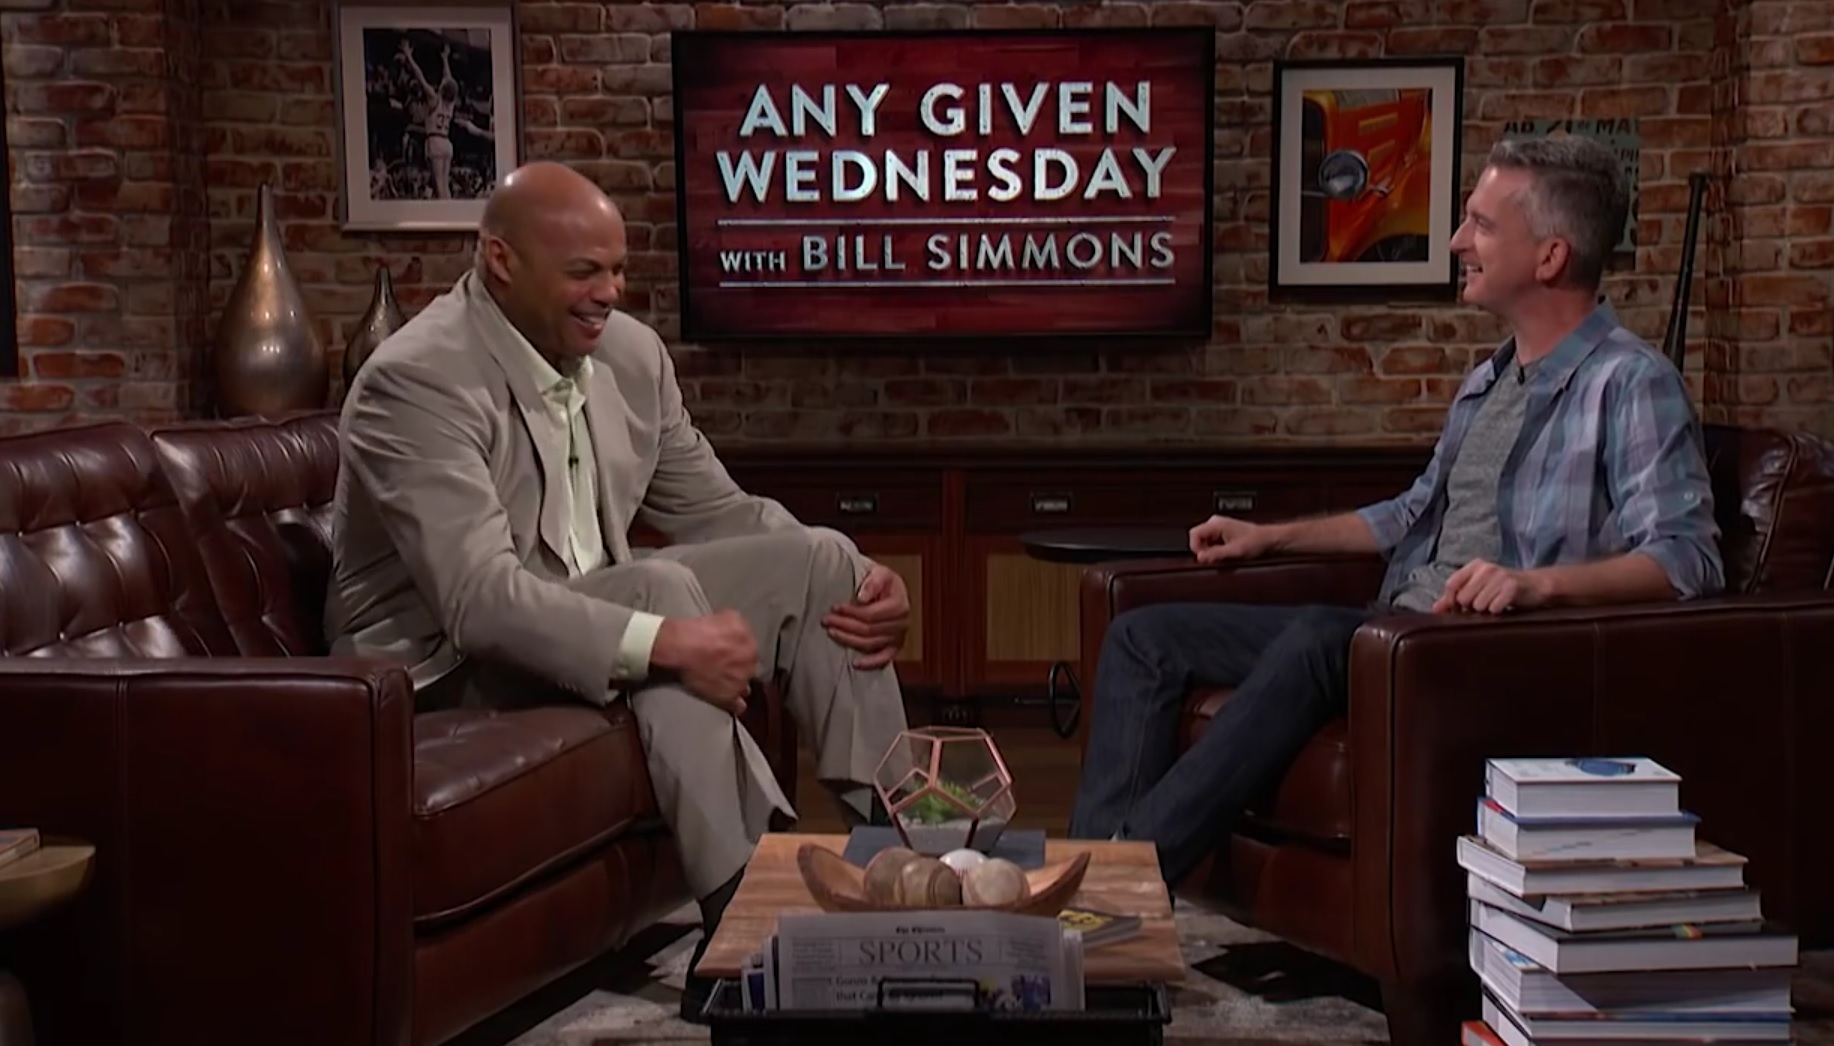 Any Given Wednesday with Bill Simmons / Youtube